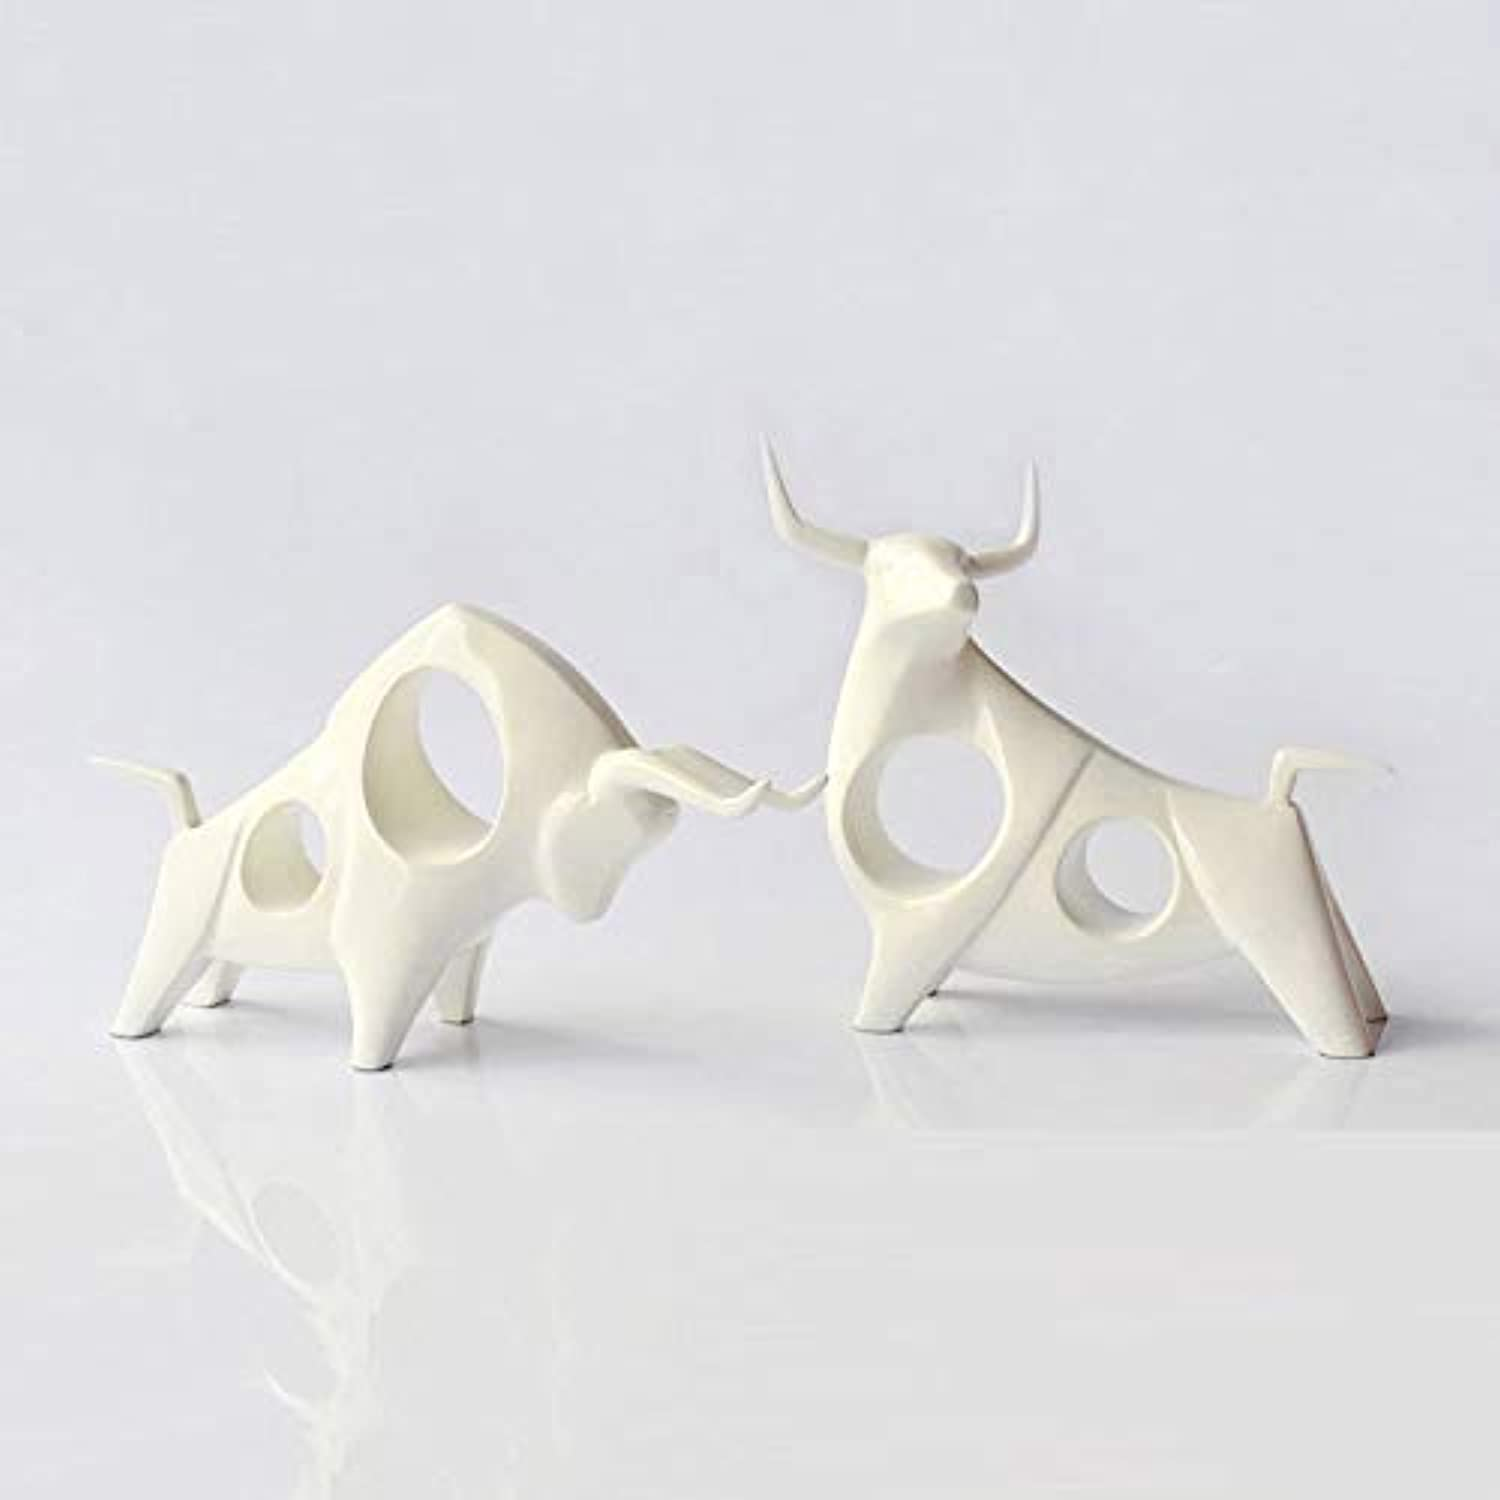 Home Decoration Hotel Bedroom Nordic Creative Home Accessories TV Cabinet Decoration Animal Cattle Resin Crafts,B